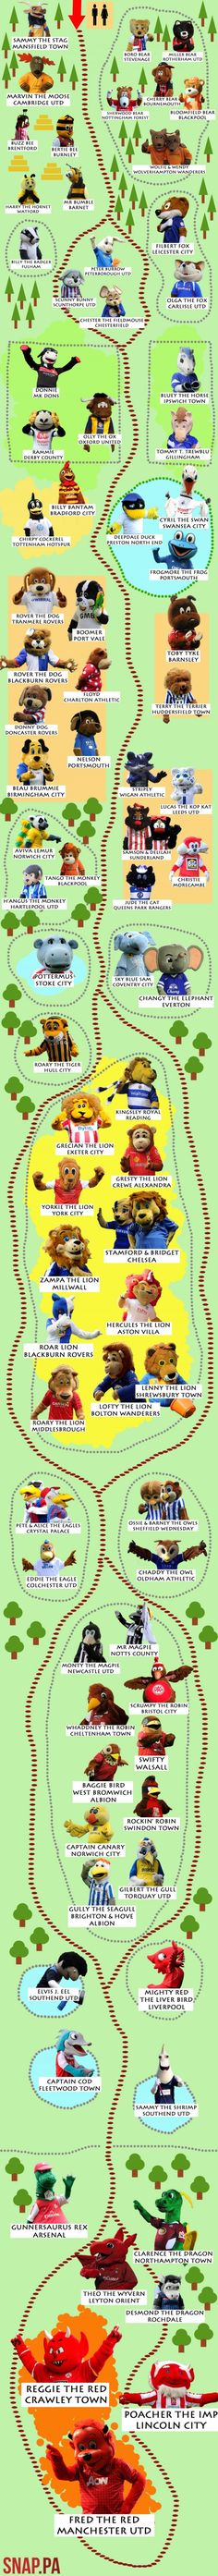 All the football league mascots, in a zoo. Wow.